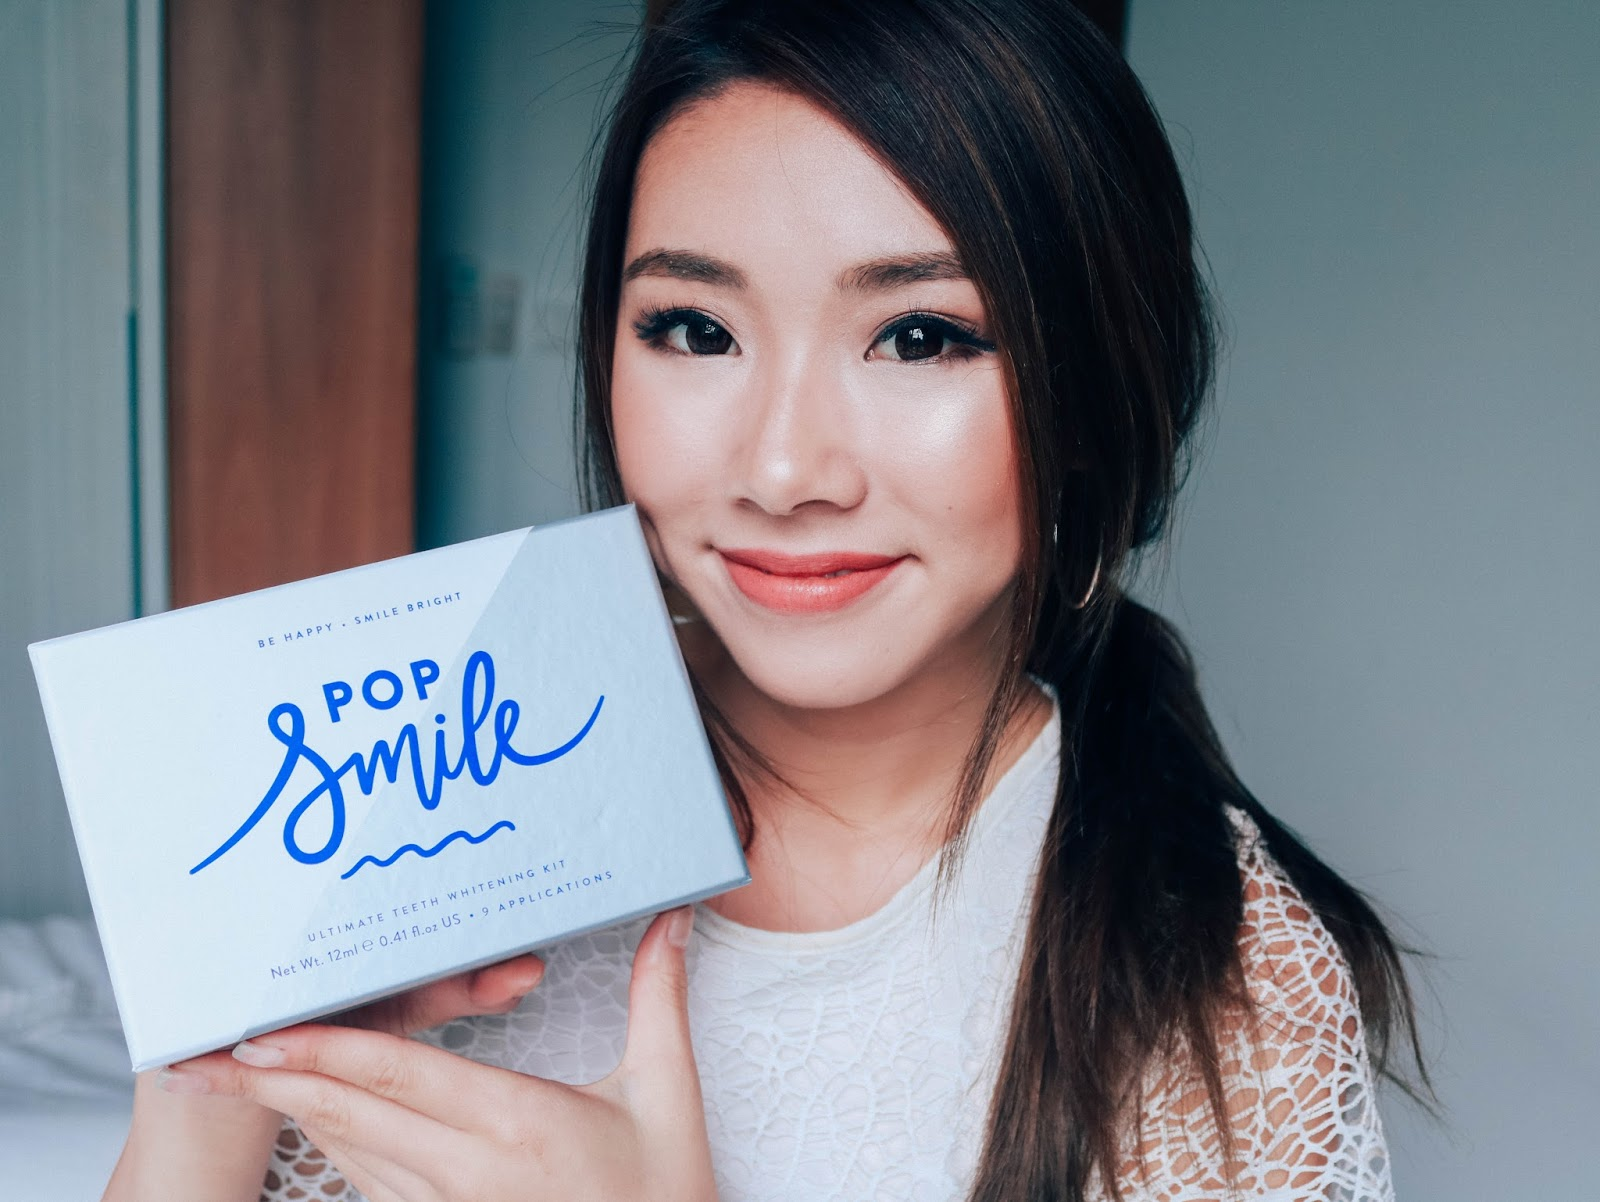 pop smile review, teeth whitening diy, at home